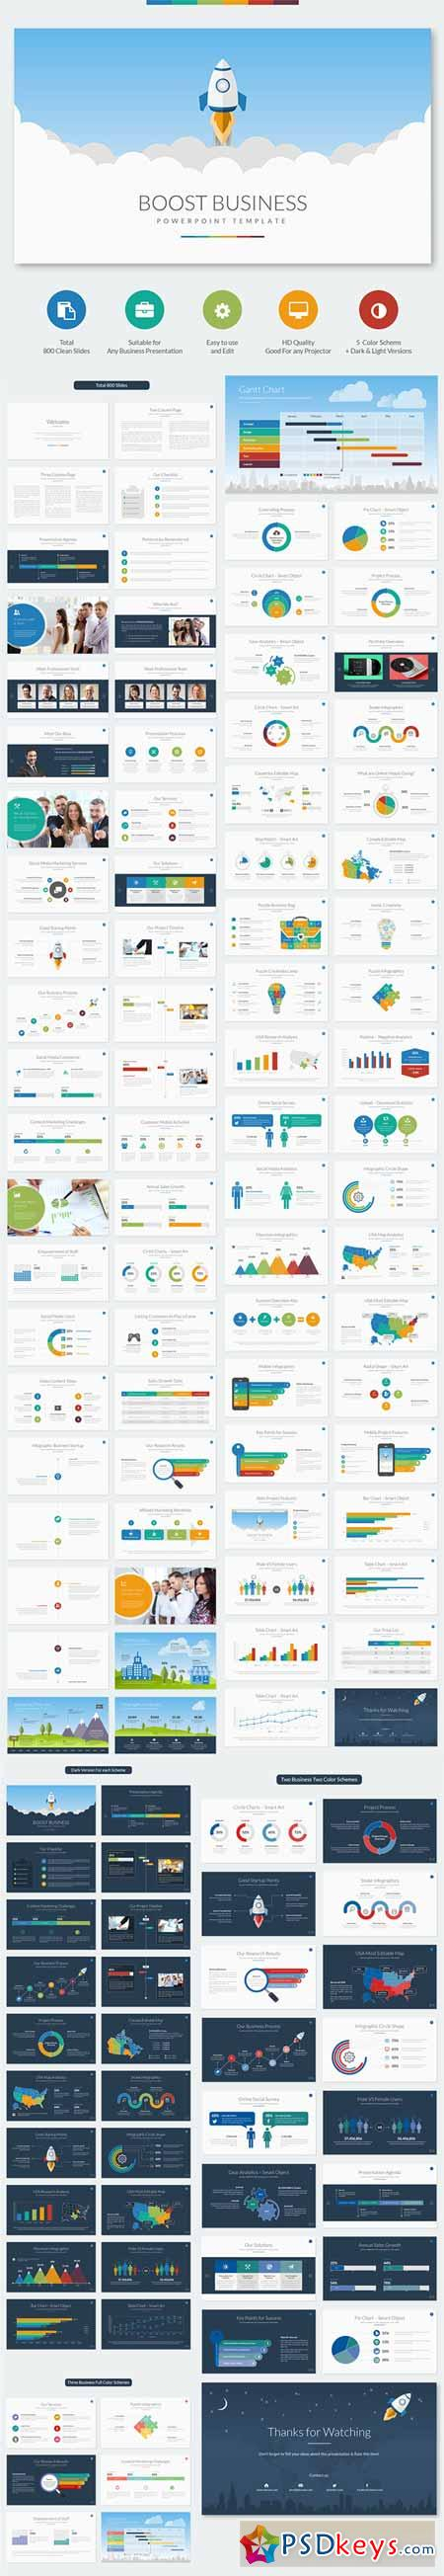 Boost business powerpoint template 10171379 free download boost business powerpoint template 10171379 toneelgroepblik Image collections